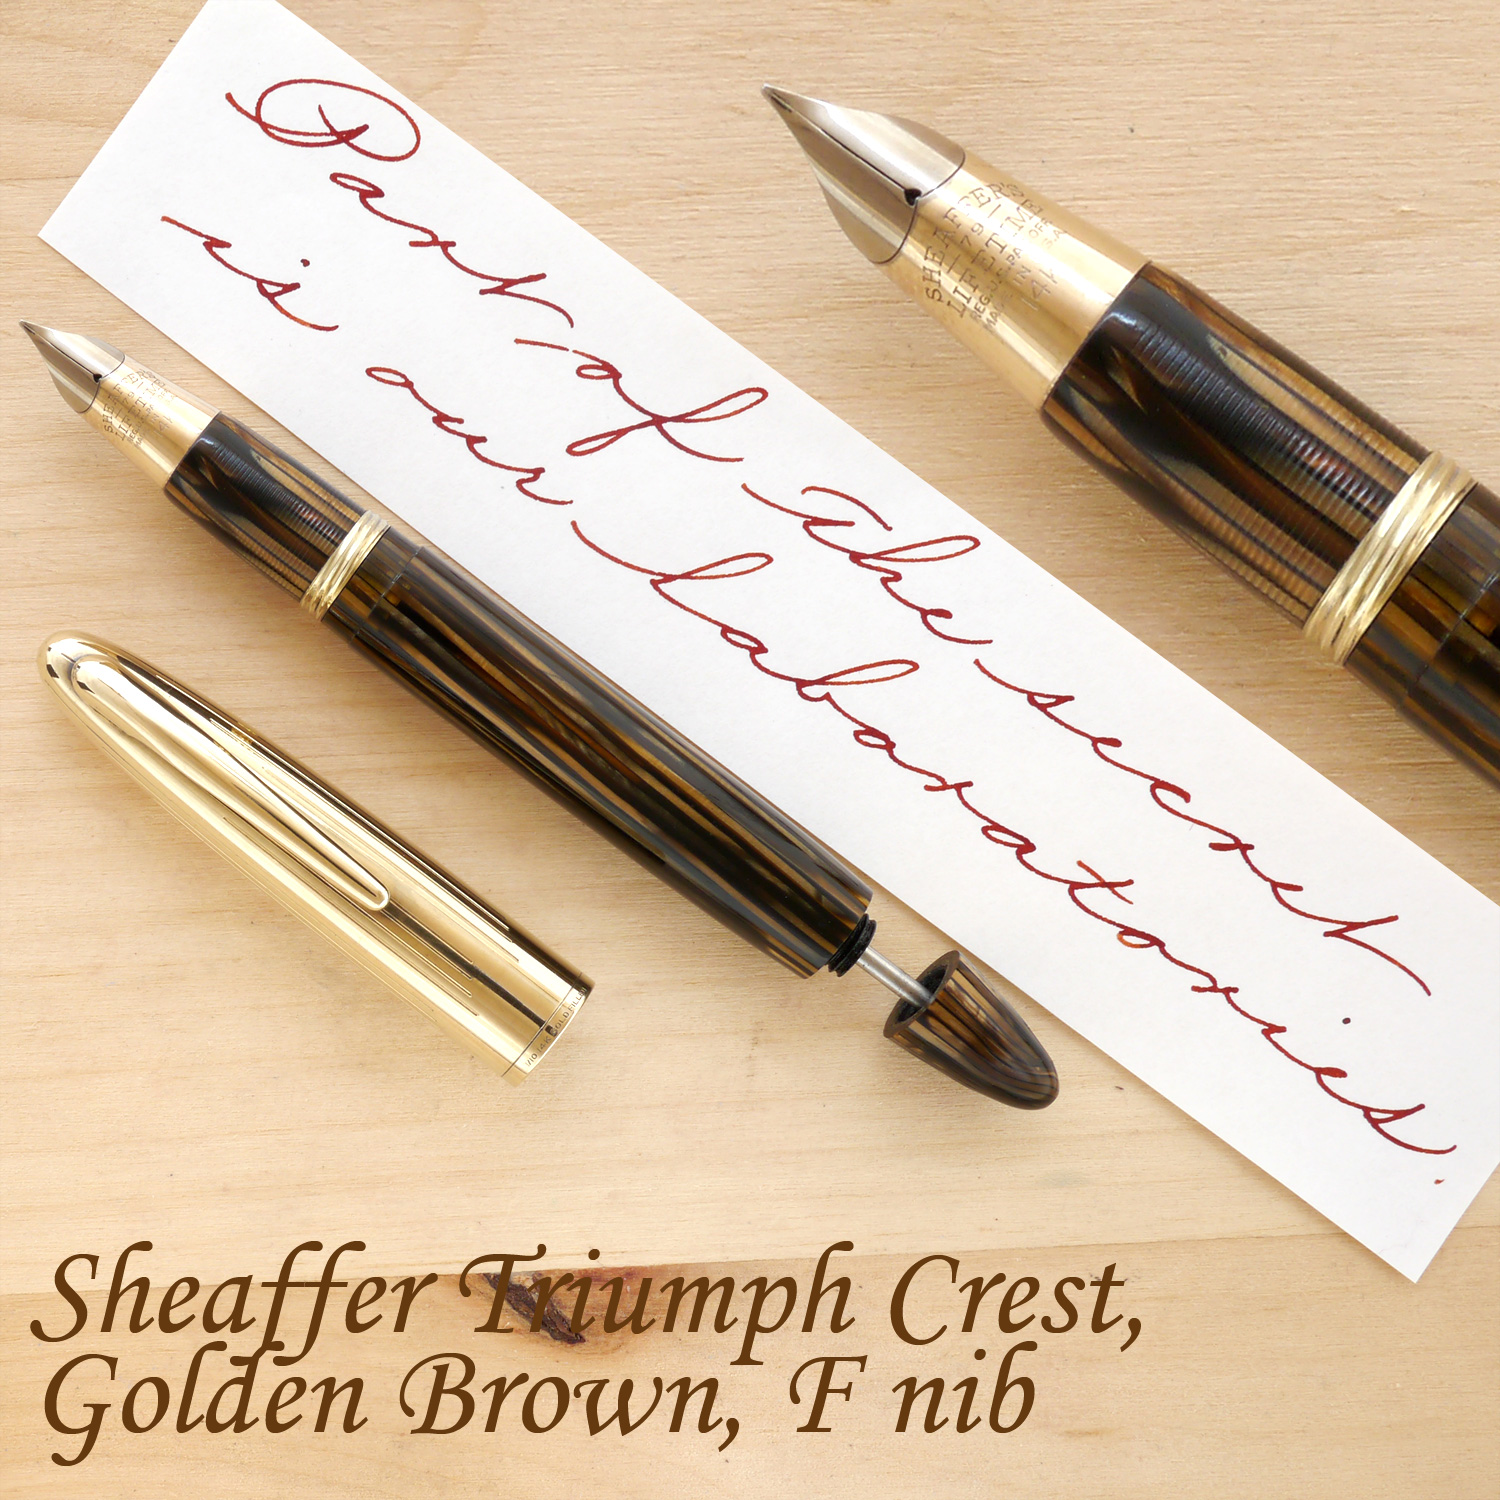 Sheaffer Triumph Crest Fountain Pen, Golden Brown, F, uncapped, with the plunger partially extended